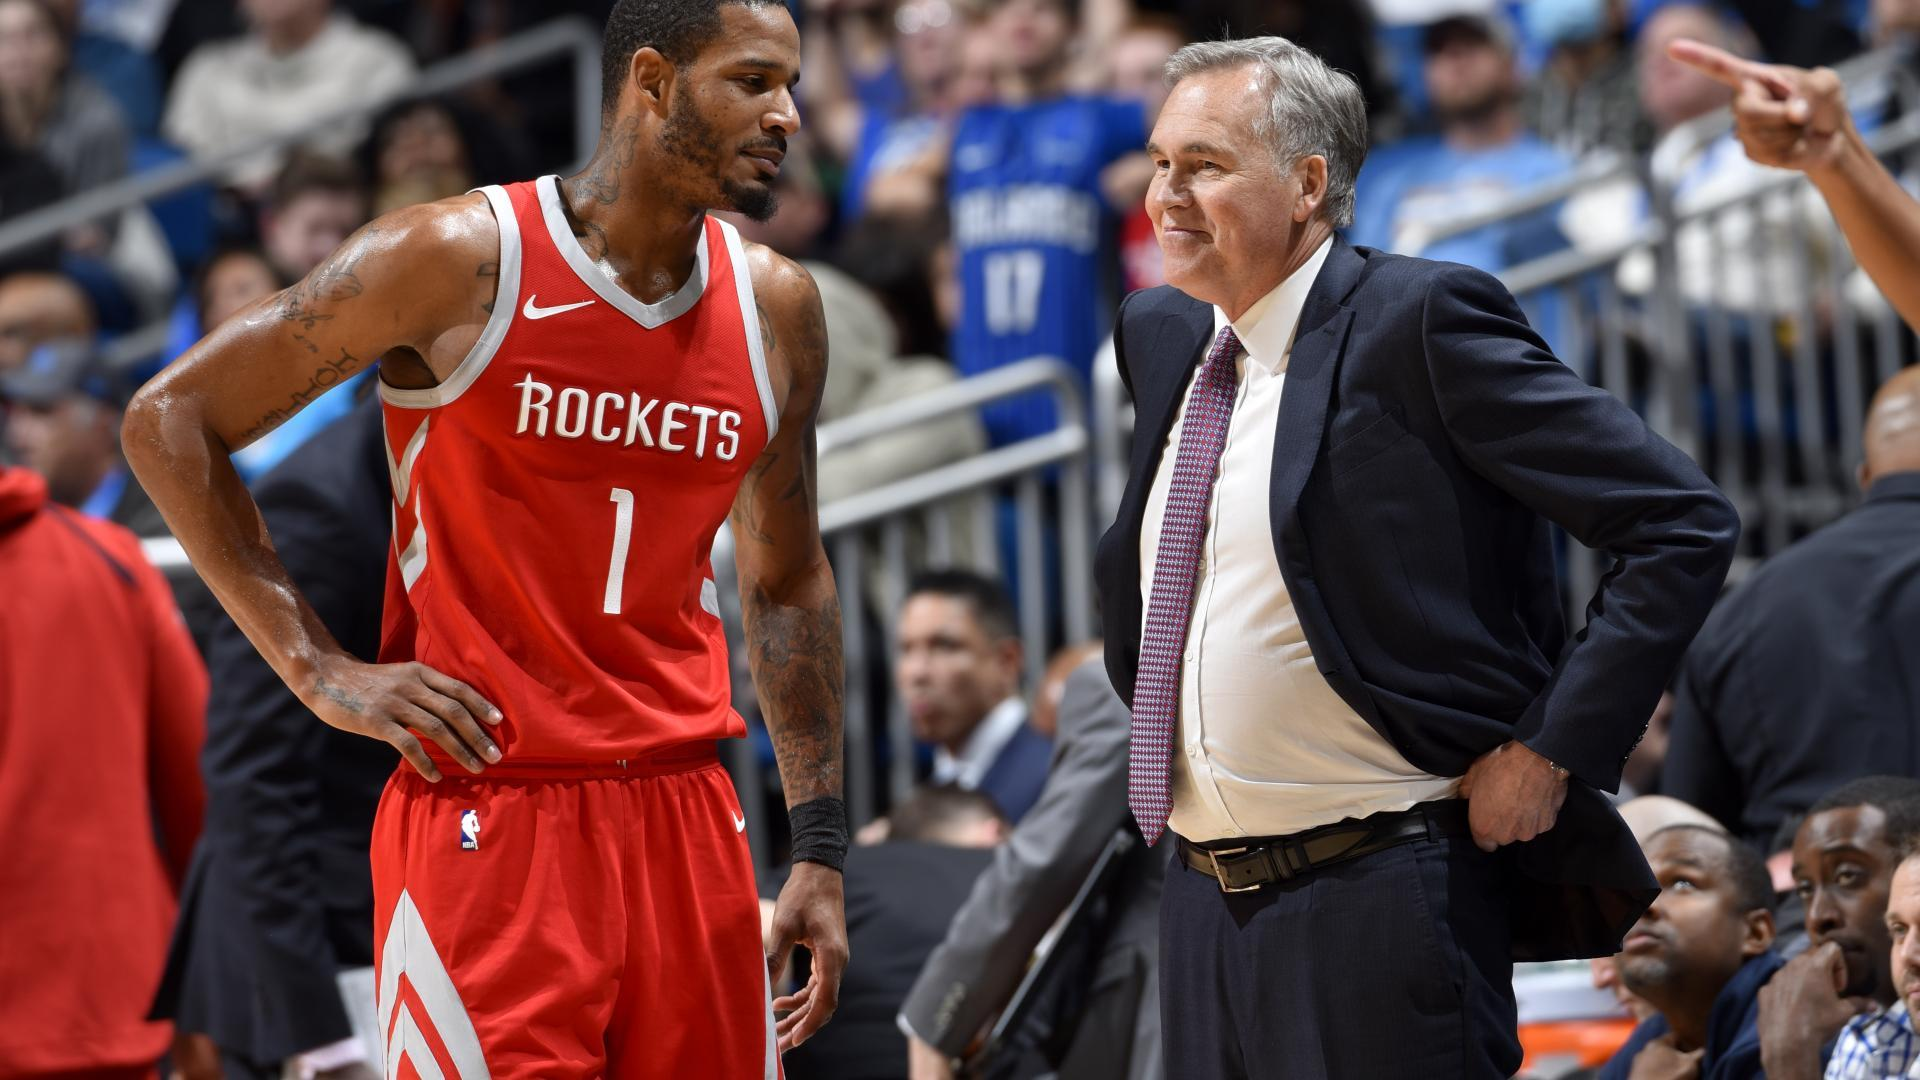 National Basketball Association roundup: Rockets stay hot, beat Clippers